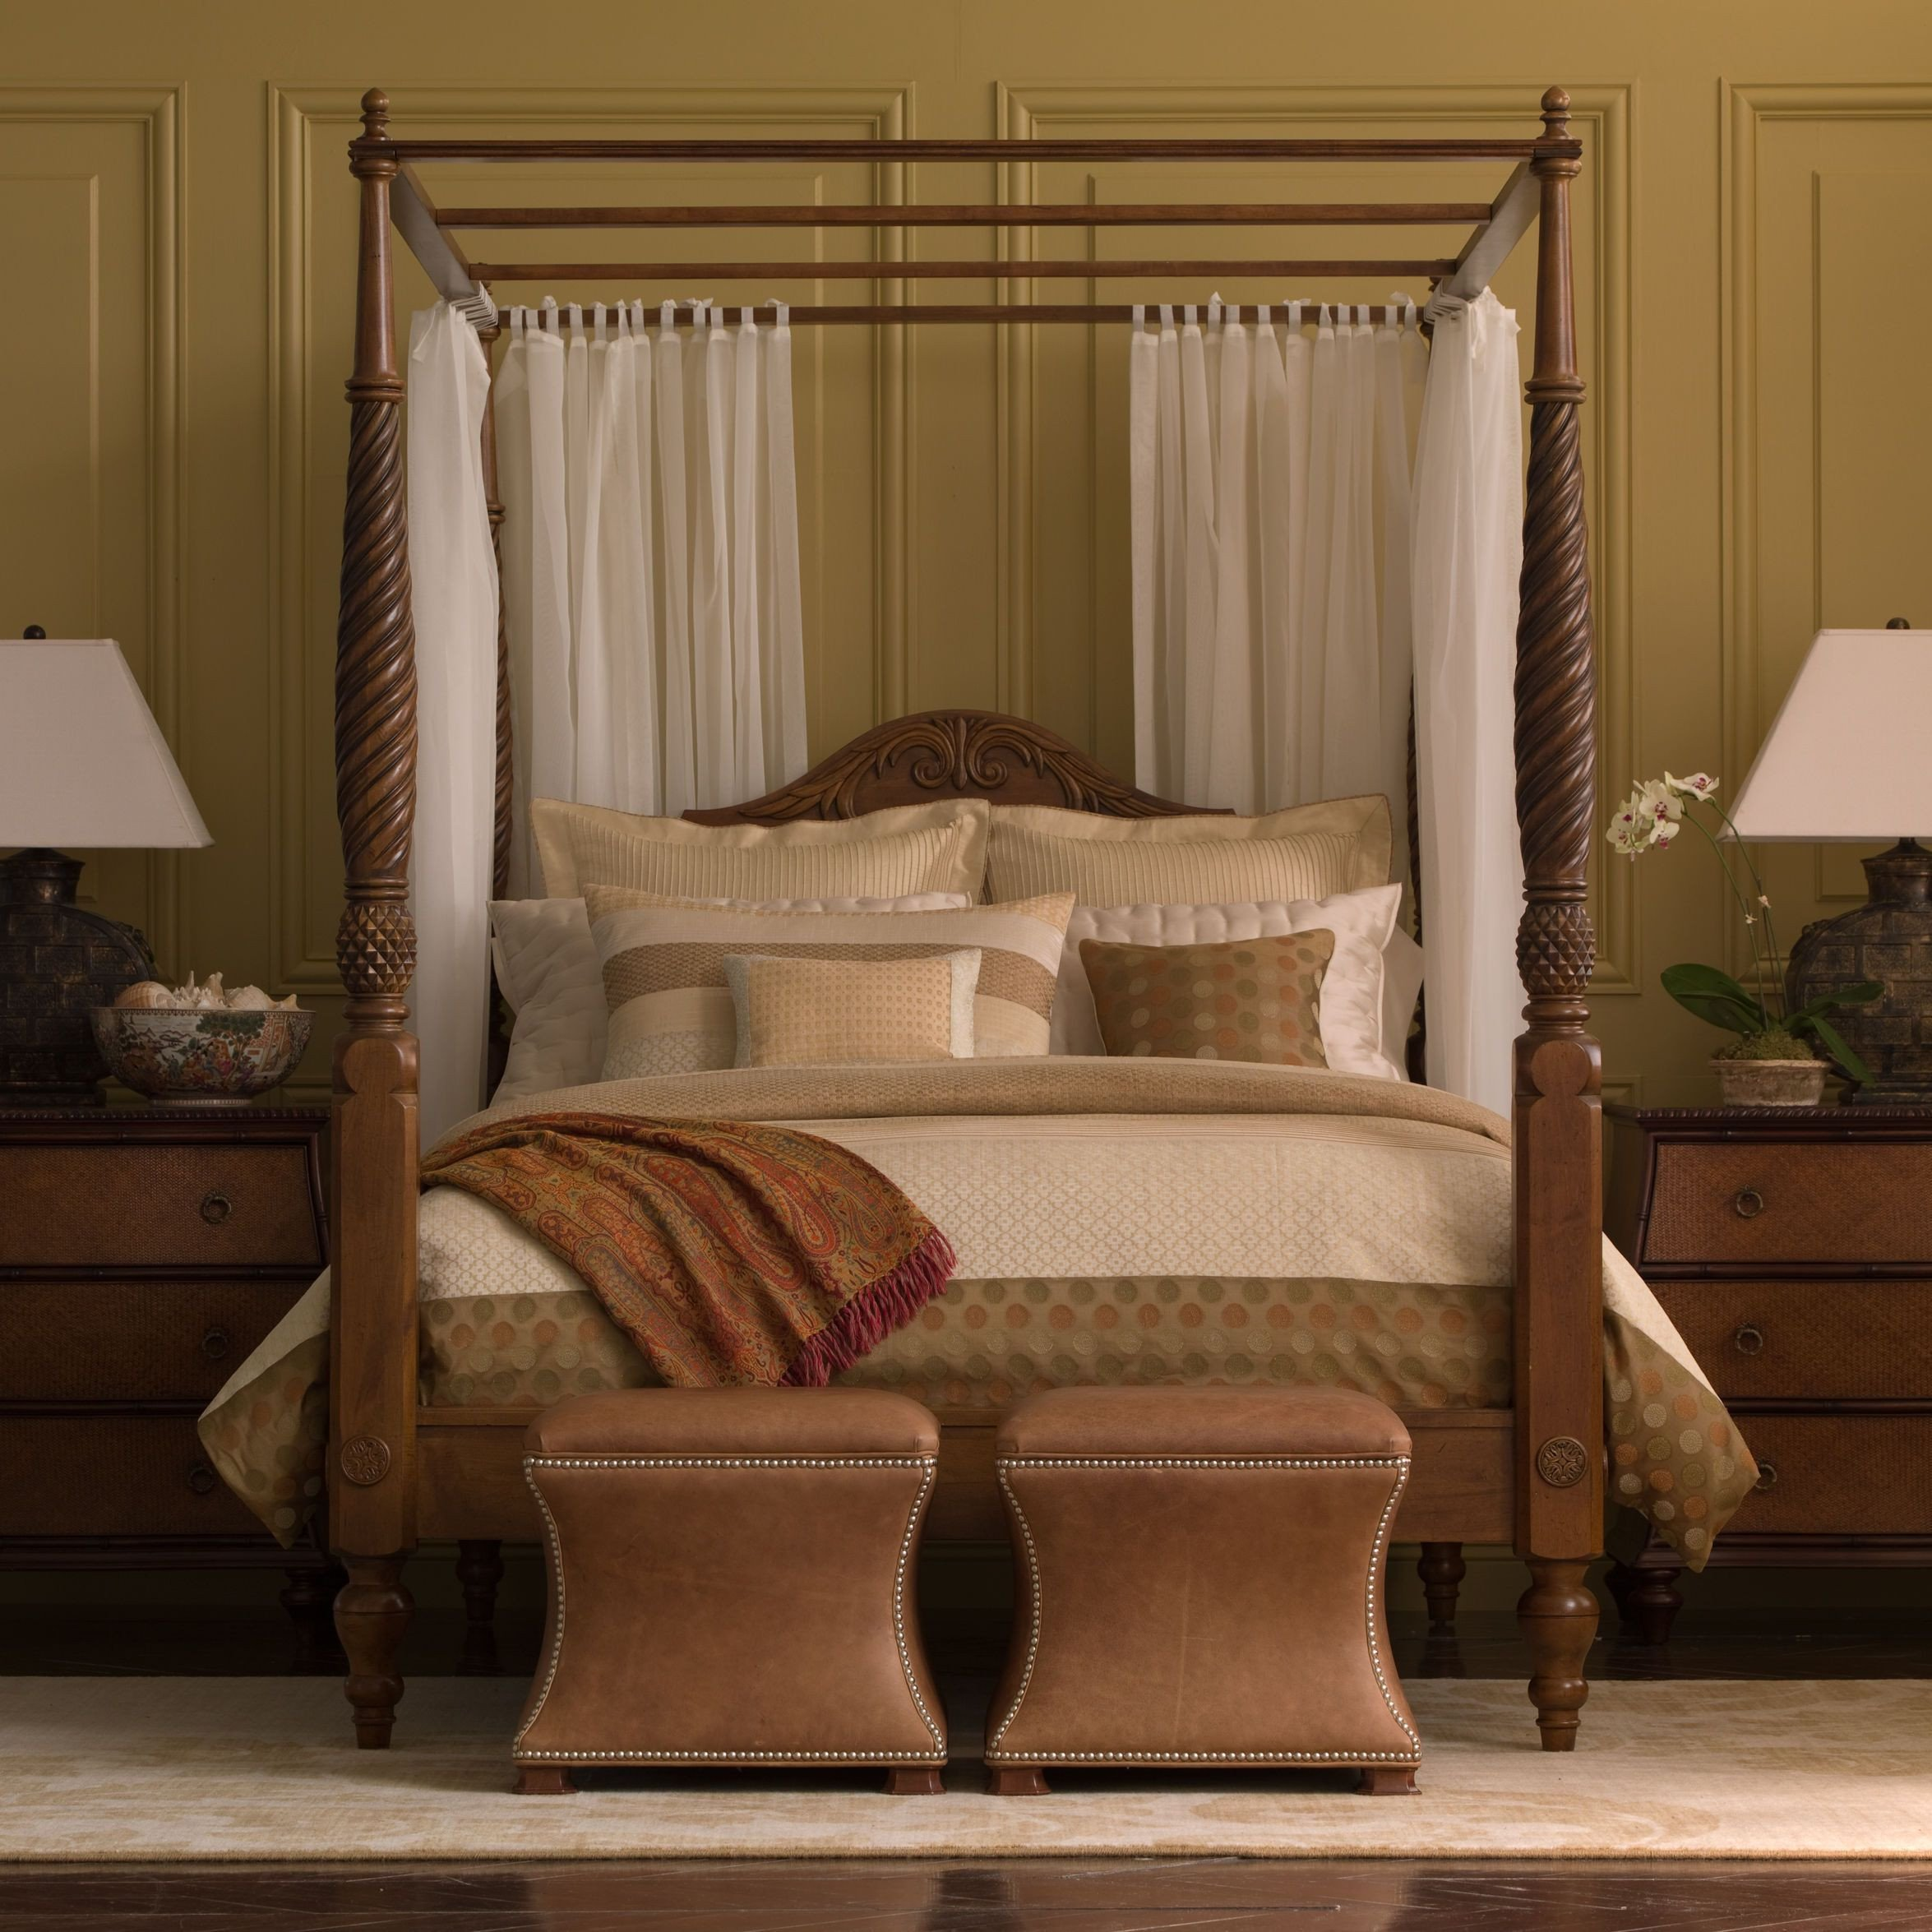 Queen Size Canopy Bedroom Set Lovely Montego Canopy Bed Ethan Allen Us